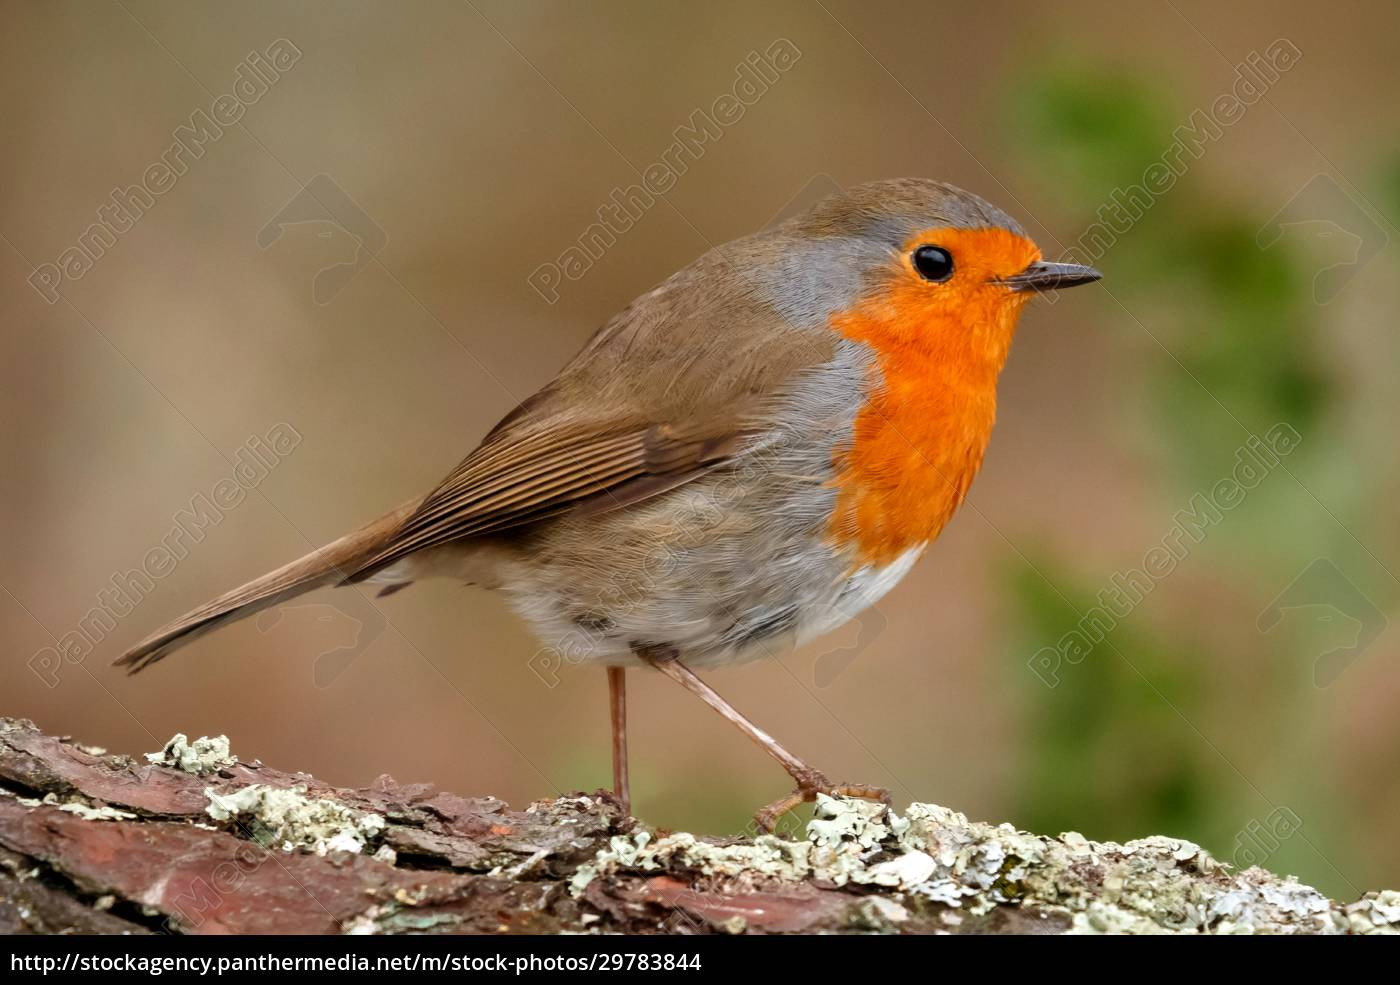 pretty, bird, with, a, nice, red - 29783844